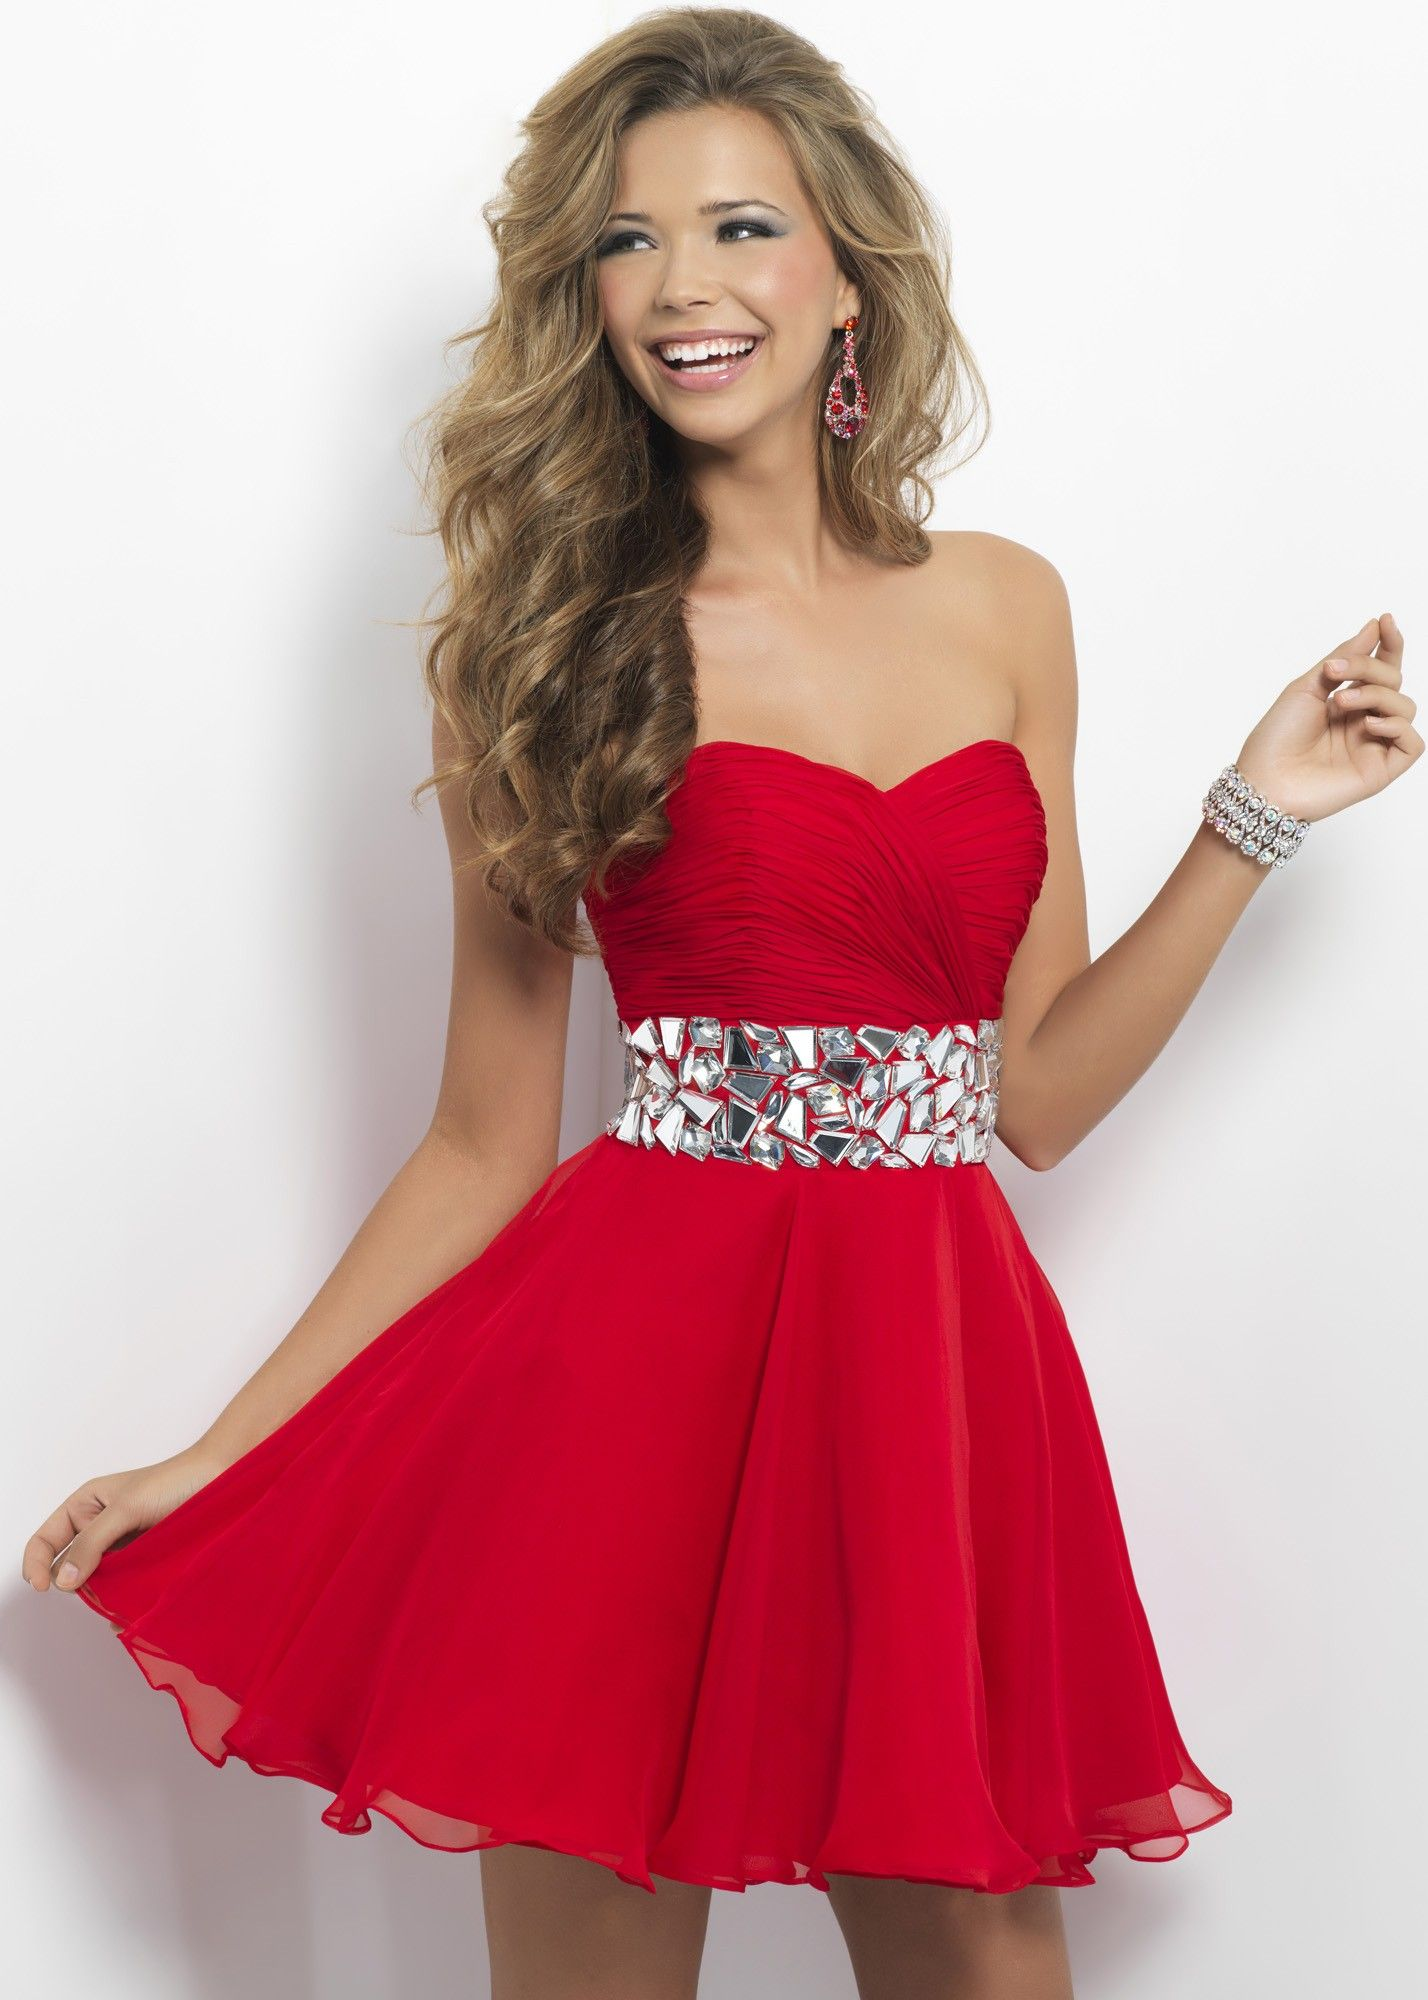 Blush Prom 9683 Cute Red Strapless Dress with a Sweetheart ...